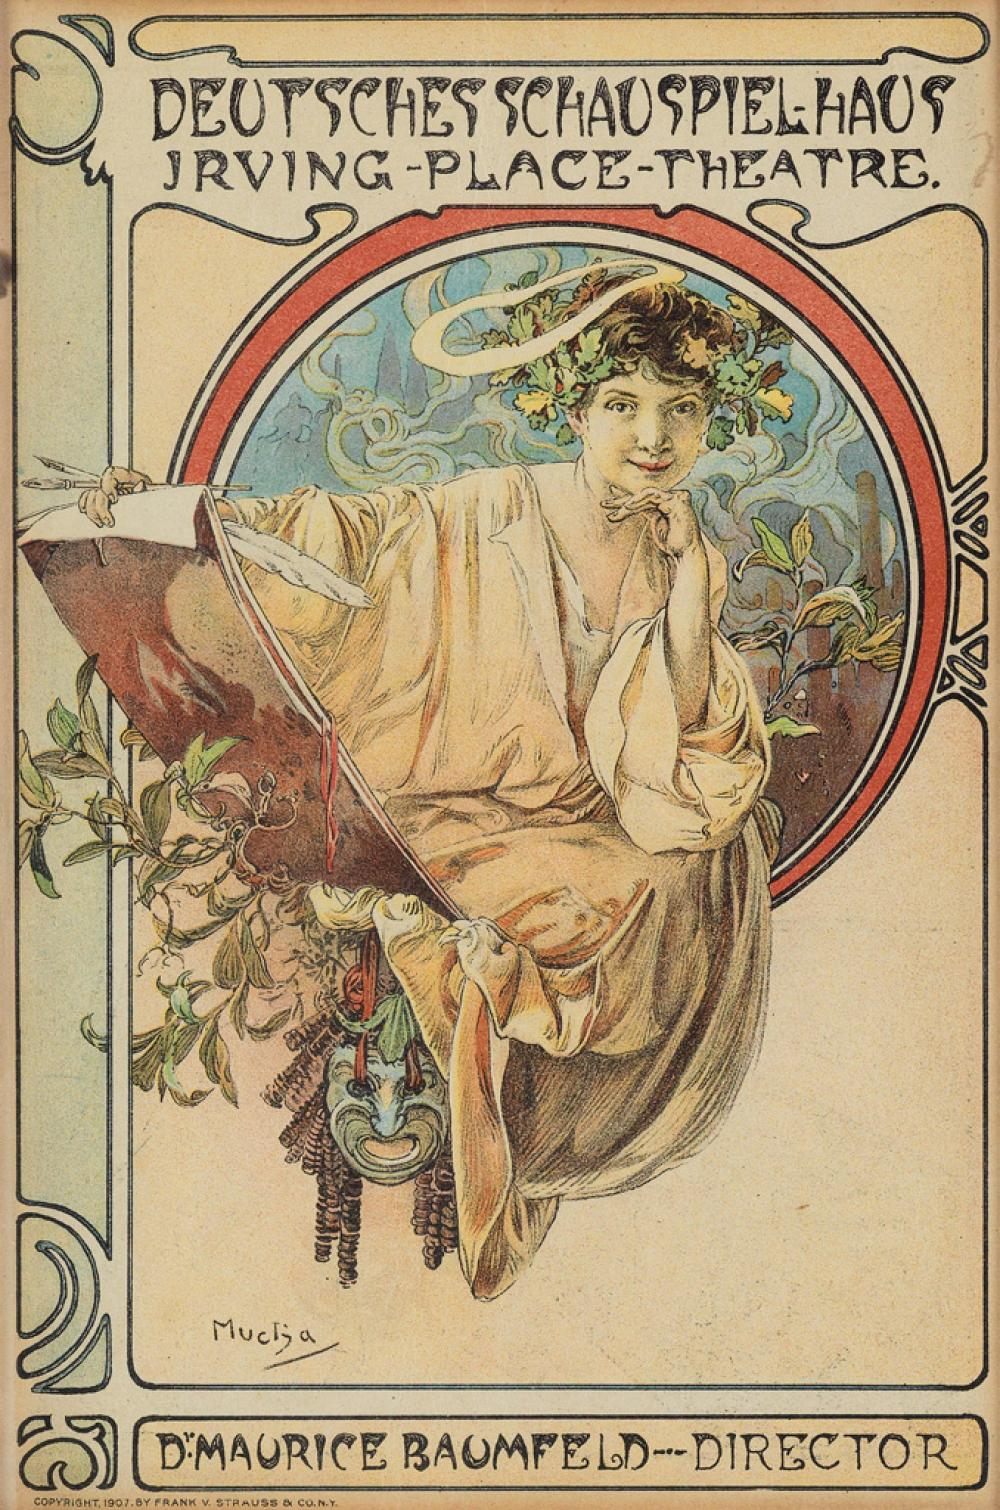 ALPHONSE MUCHA (1860-1939). DEUTSCHES SCHAUSPIEL - HAUS / IRVING - PLACE - THEATRE. Theatre program cover. 1907. 8x5 inches, 22x14 cm.